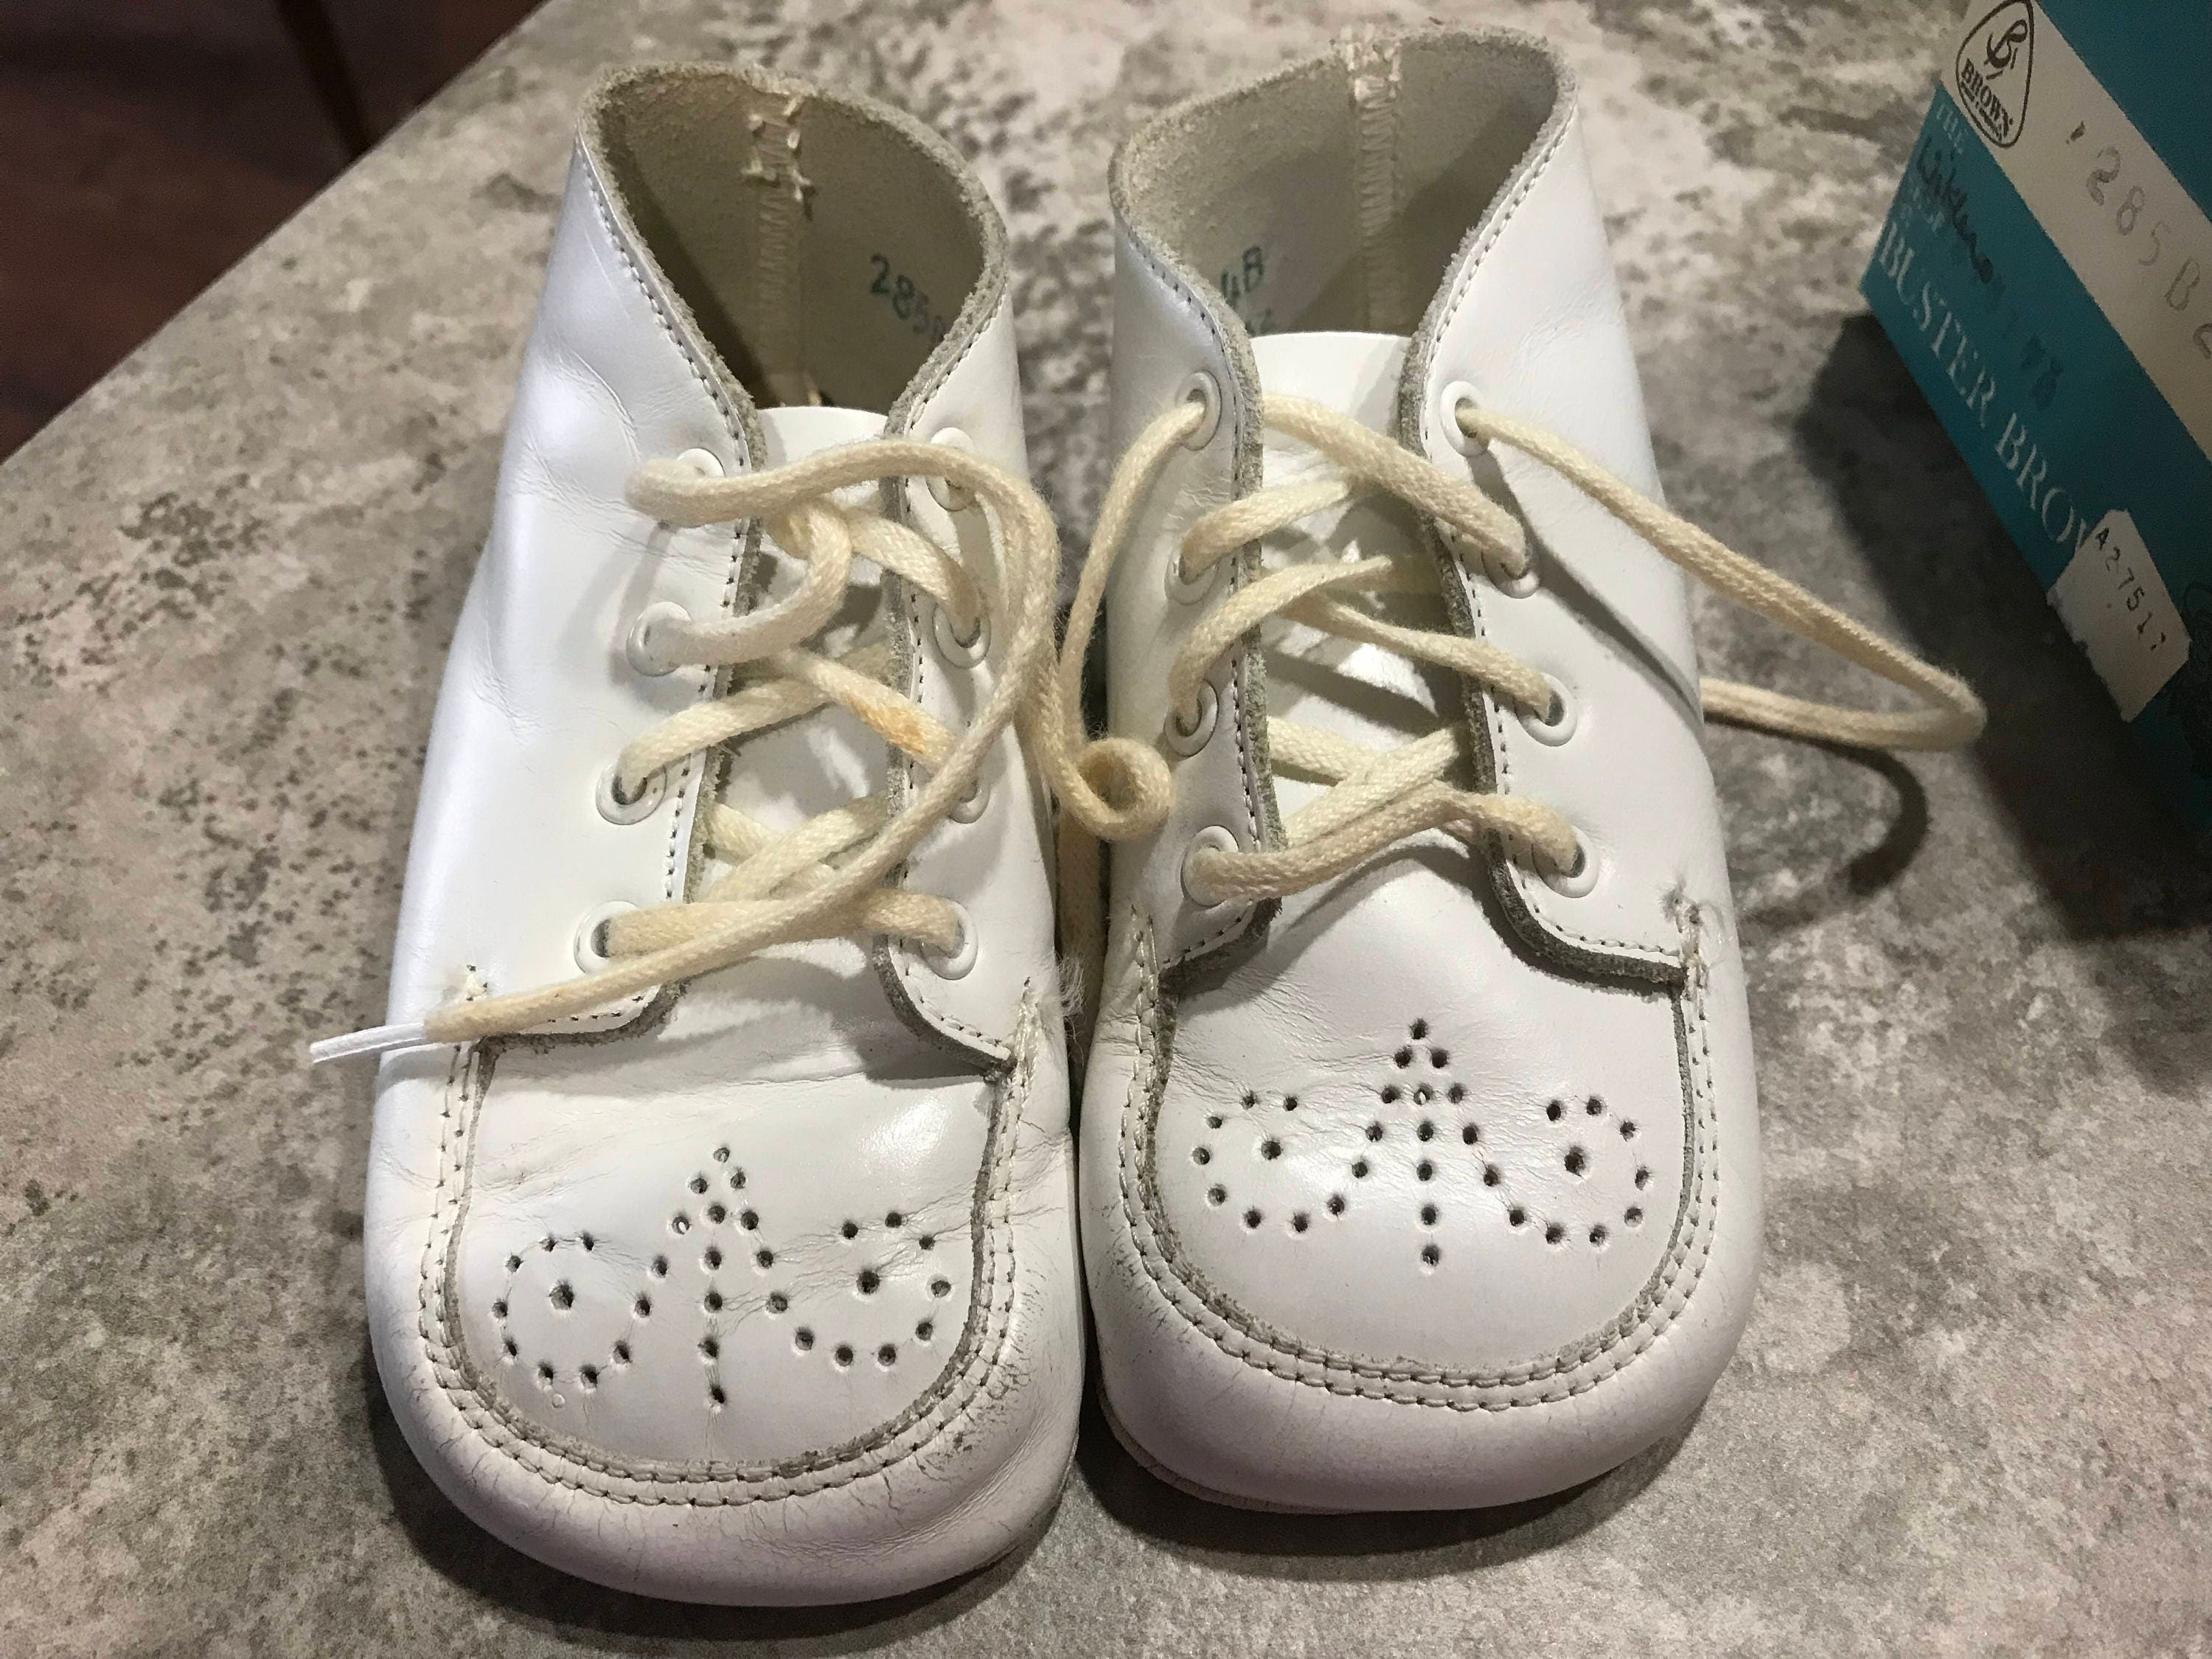 The Wikler Shoe By Buster Brown Sz 4B White Baby Shoes with